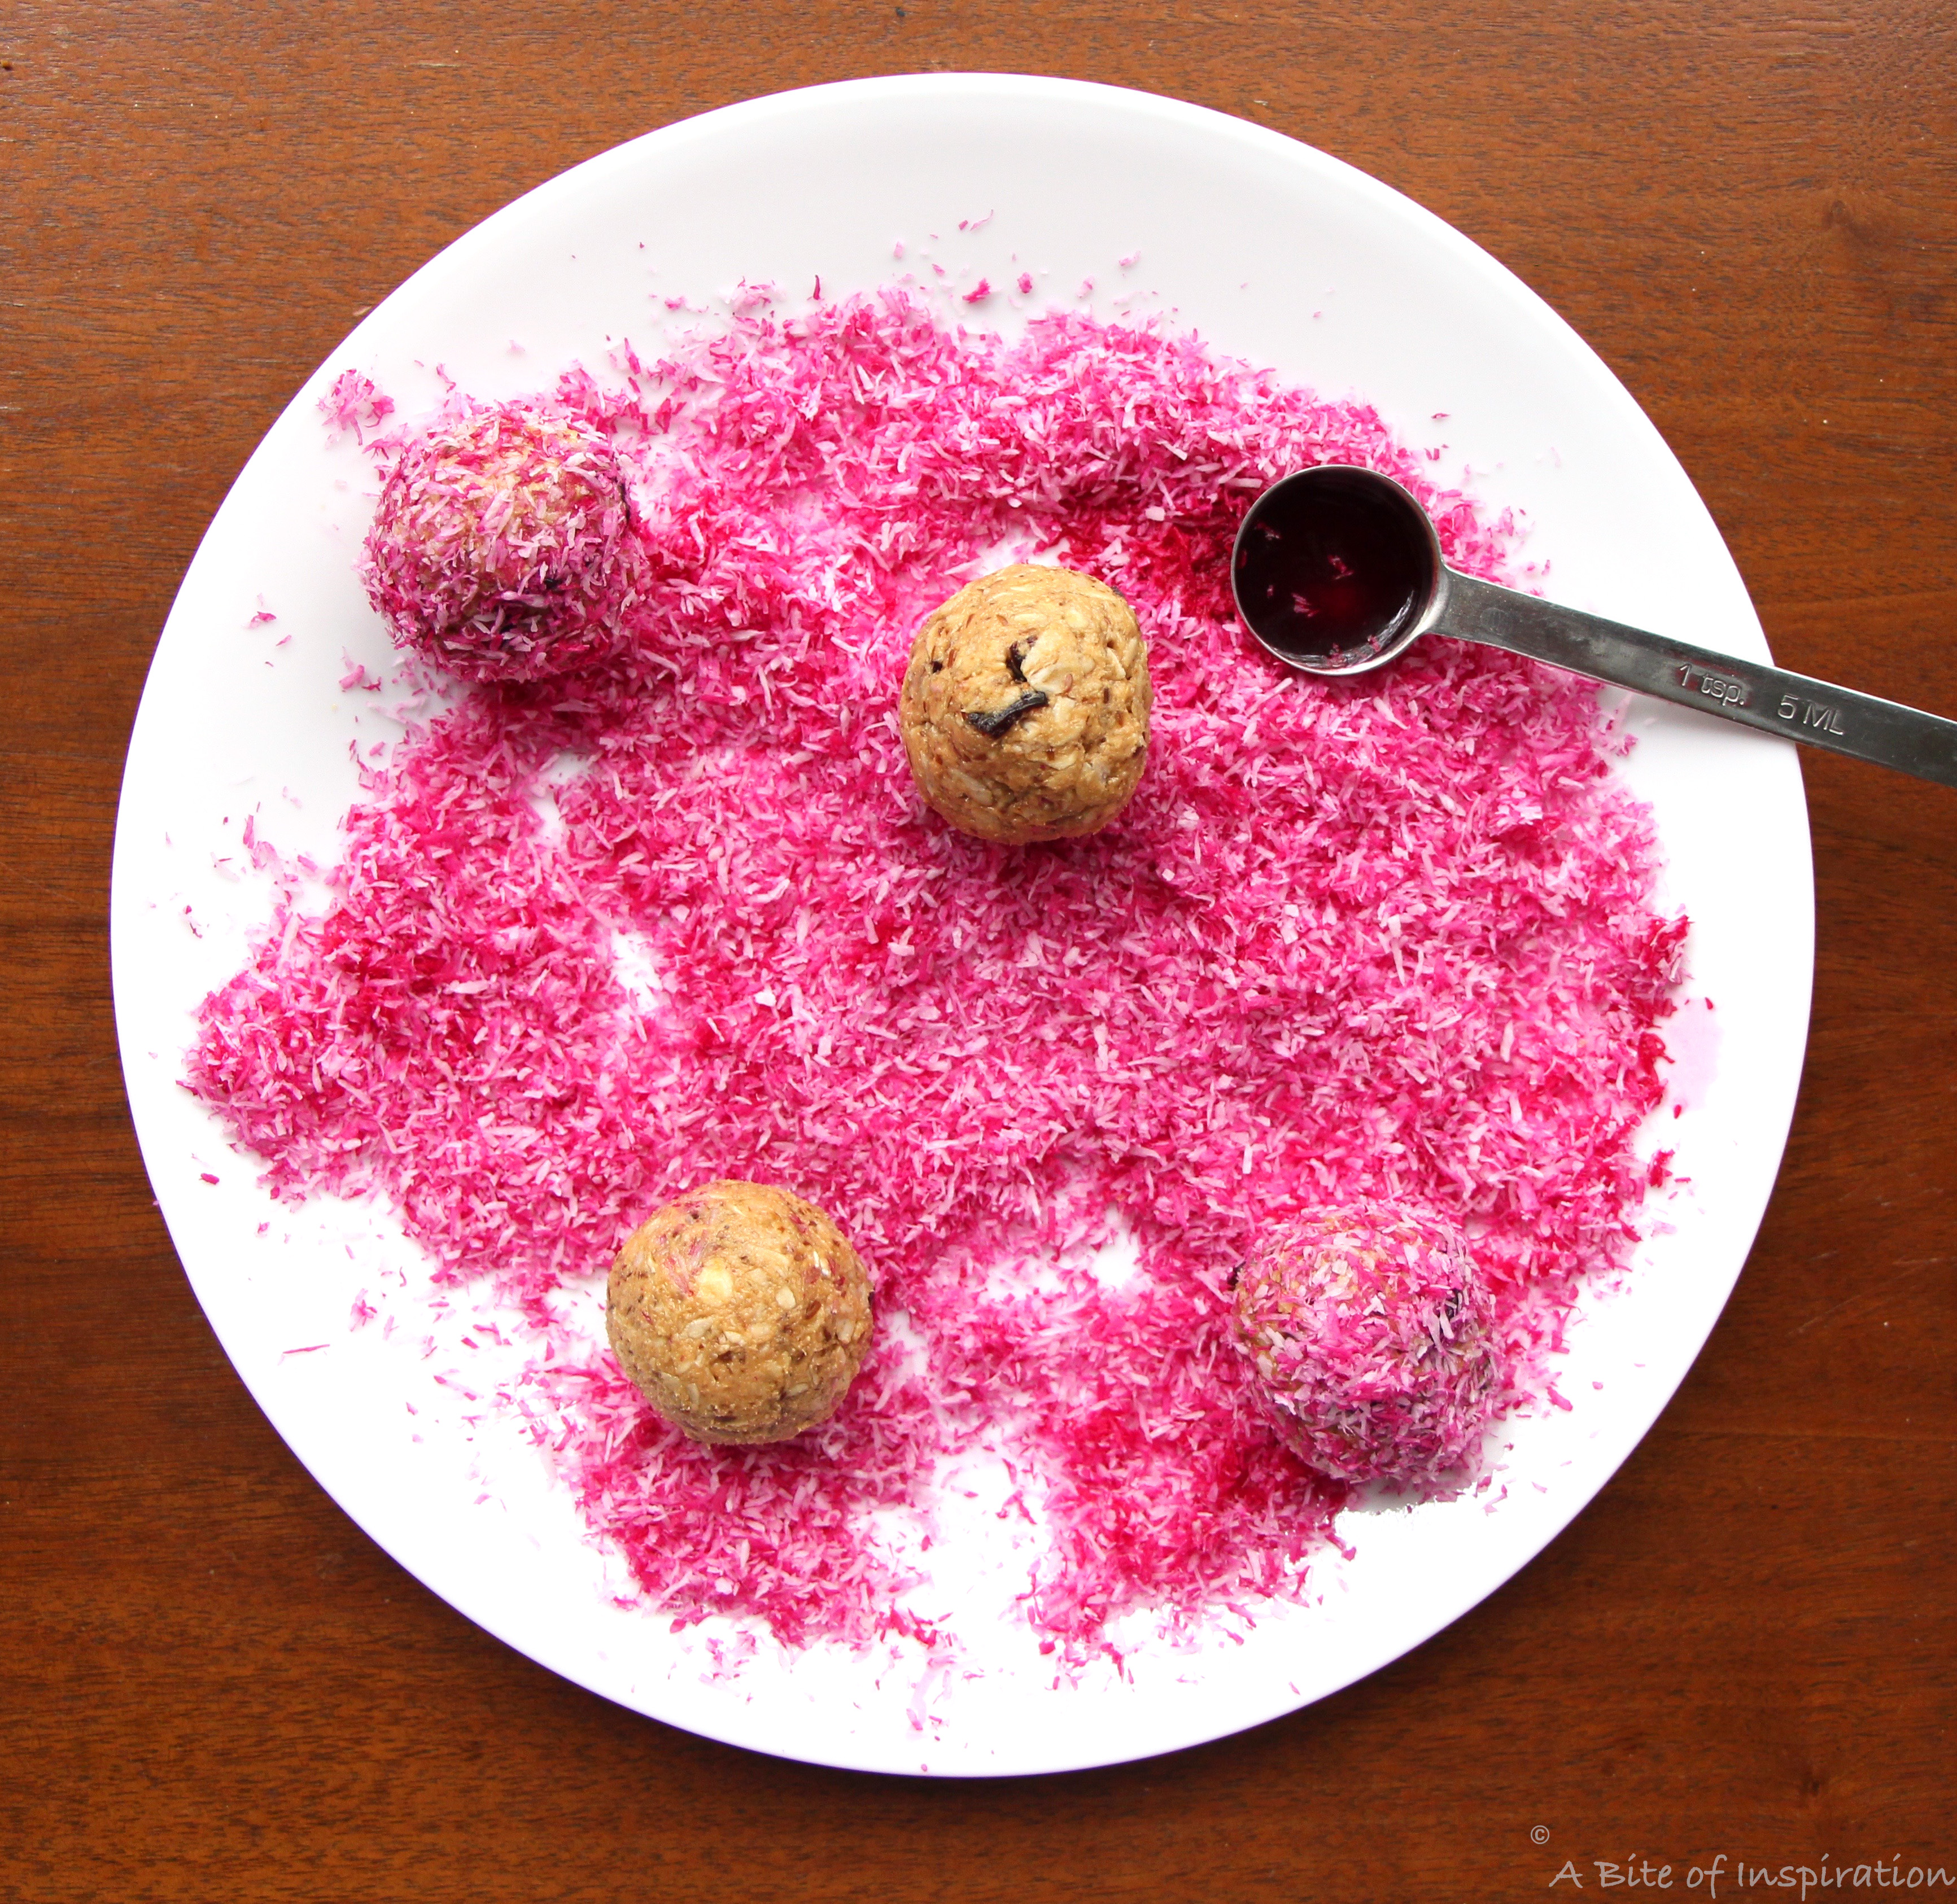 Protein snacks on a plate full of pink shredded coconut with a teaspoon of beet juice in the corner